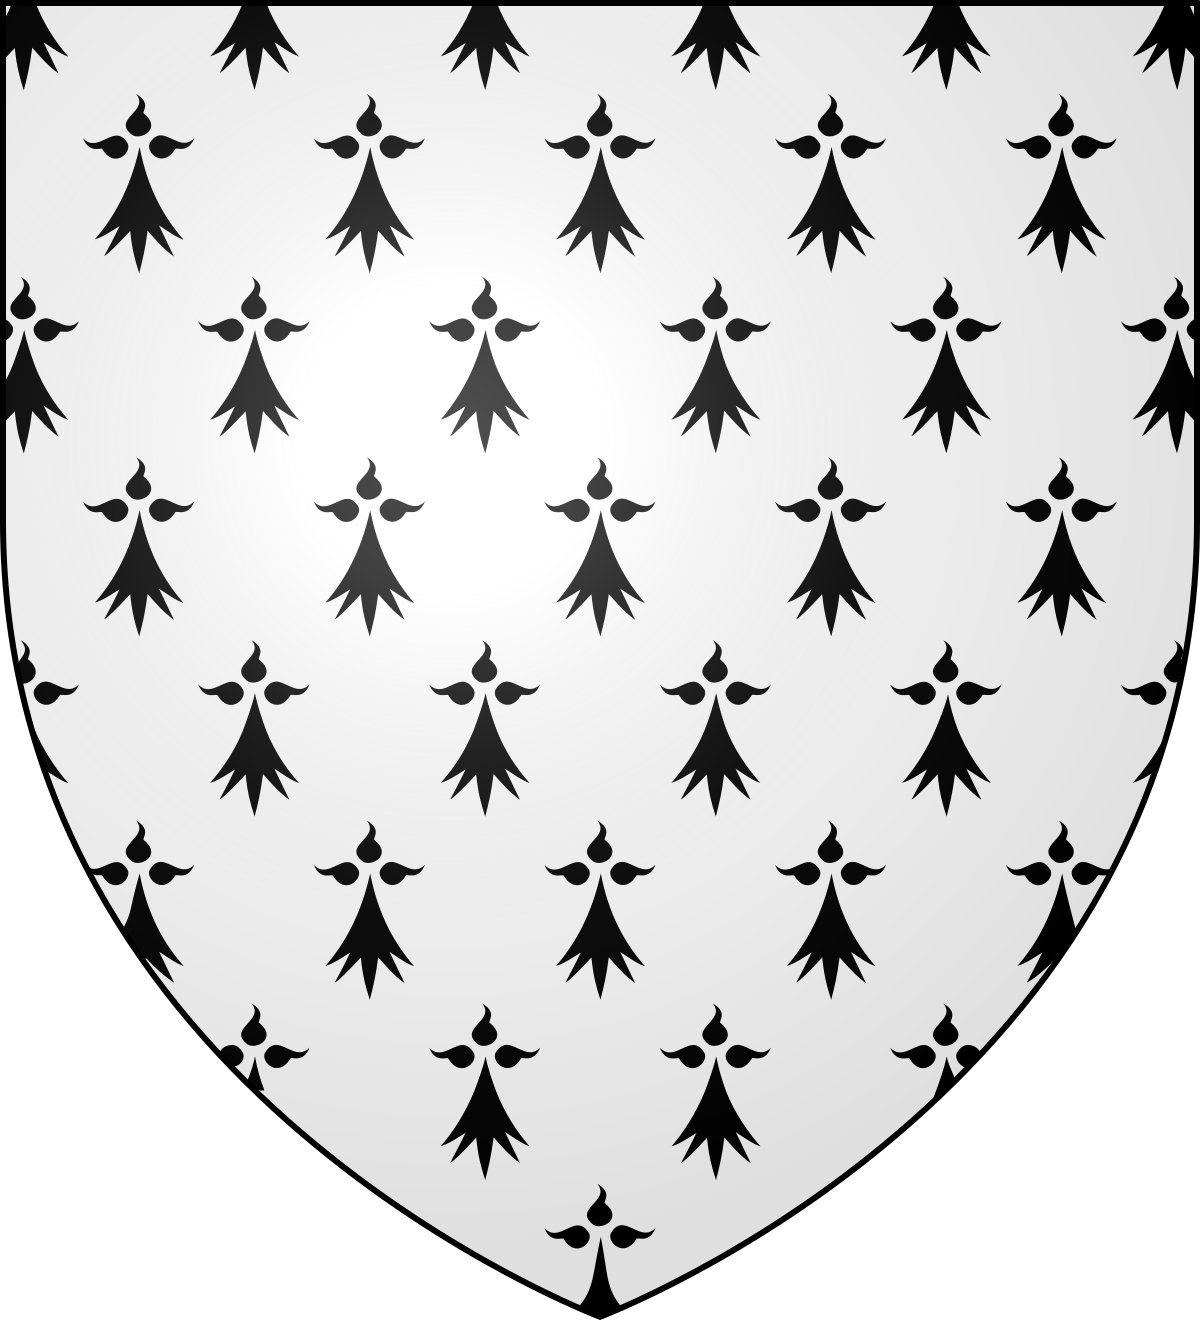 1200px-Armoiries_Bretagne_-_Arms_of_Brittany